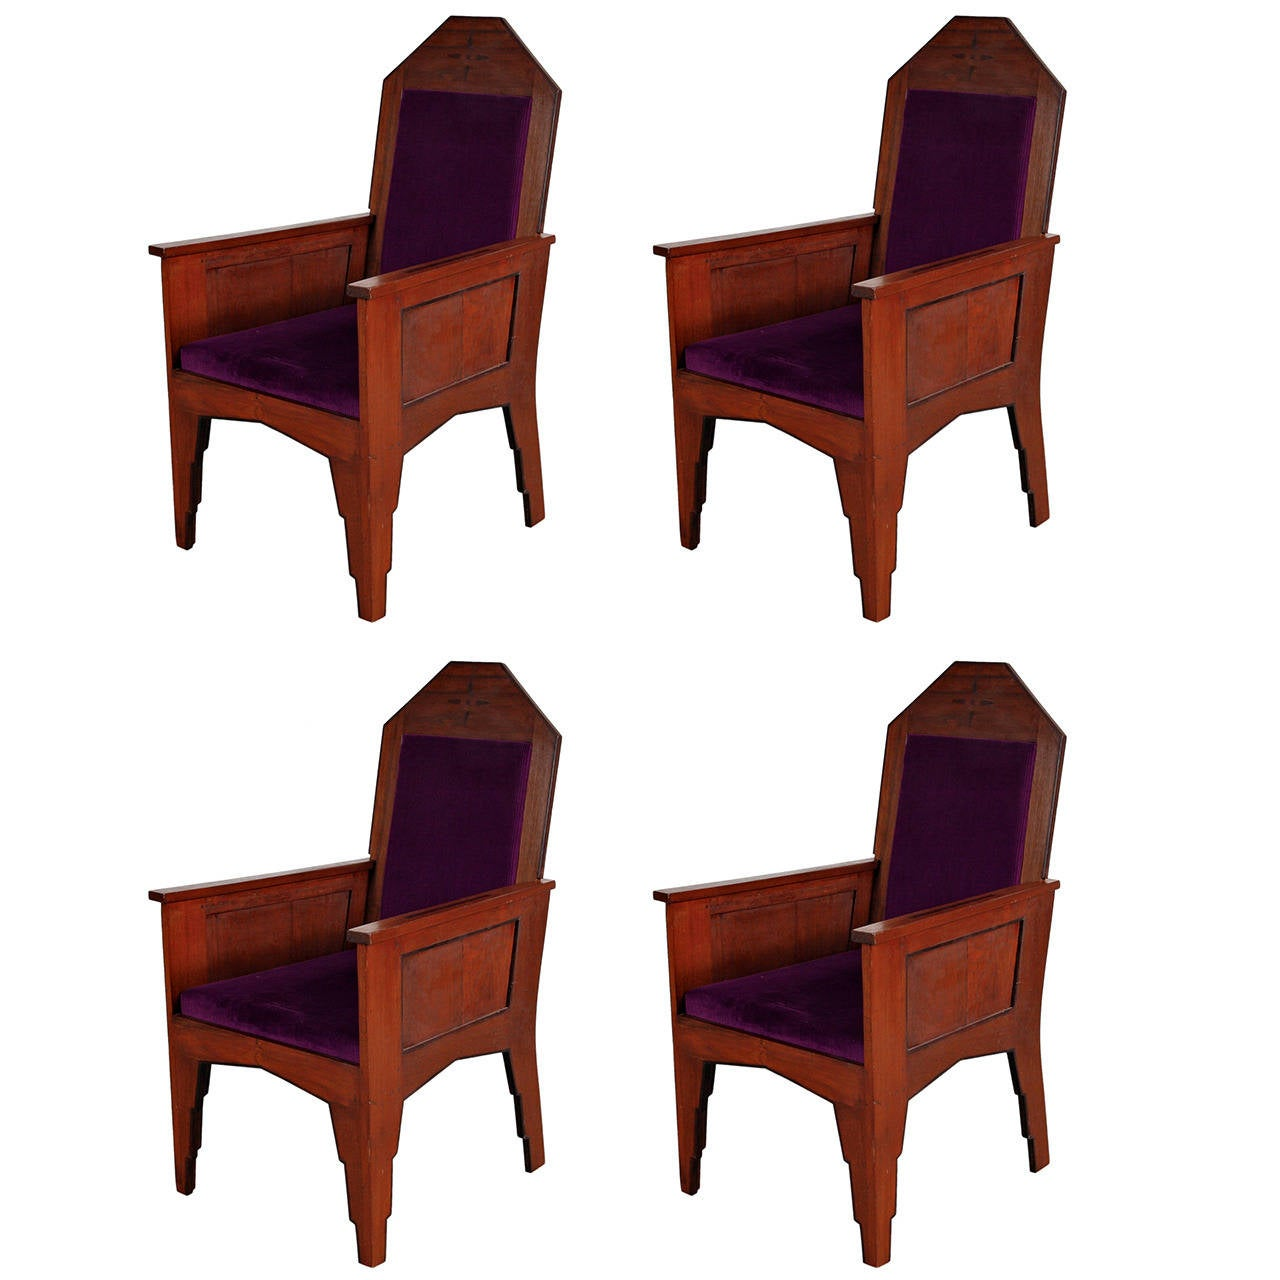 Set of Four Amsterdamse School Easy Chairs, circa 1920